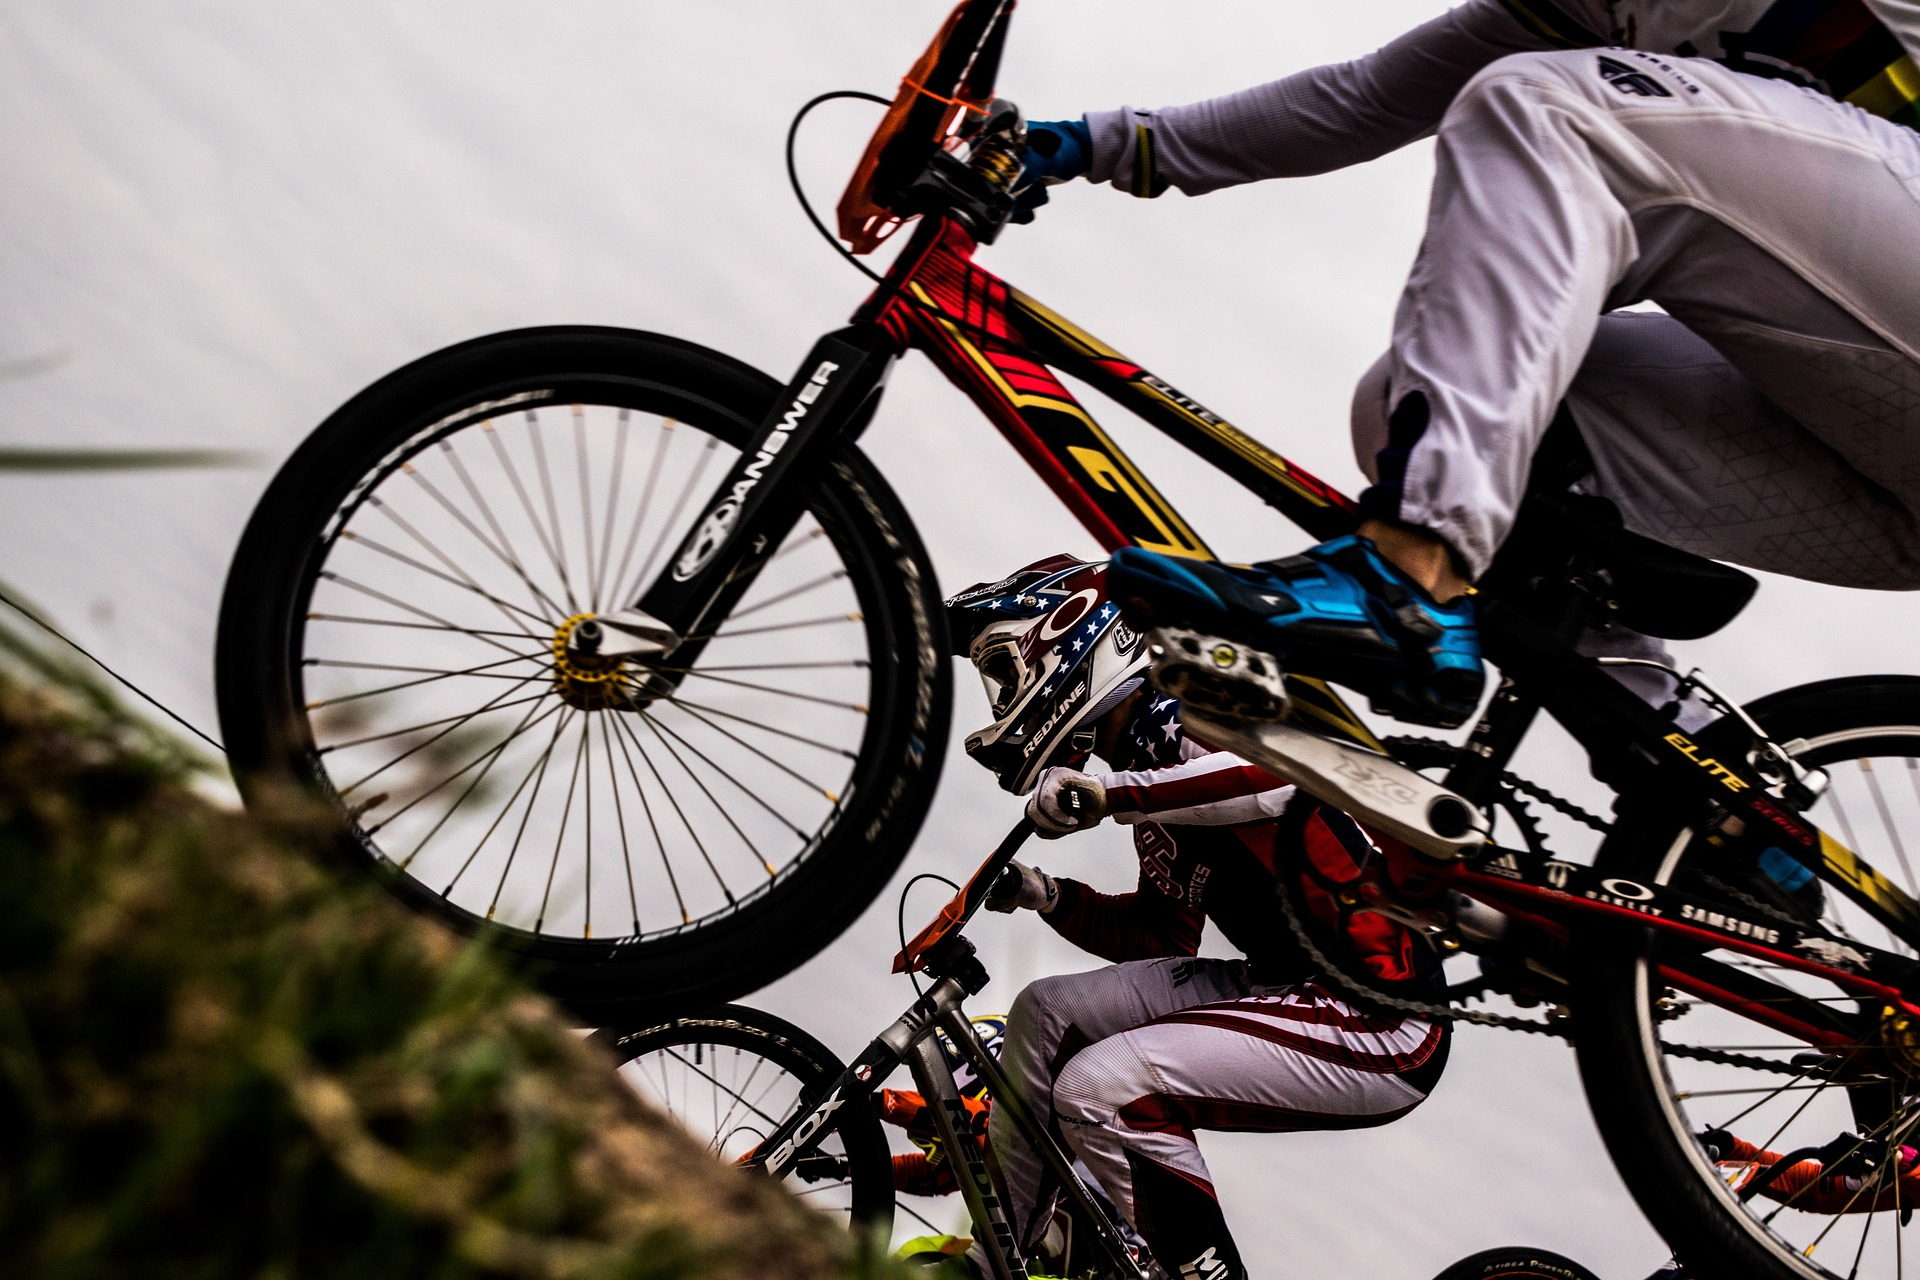 Should I buy flat or SPD pedals for my mountain-bike?